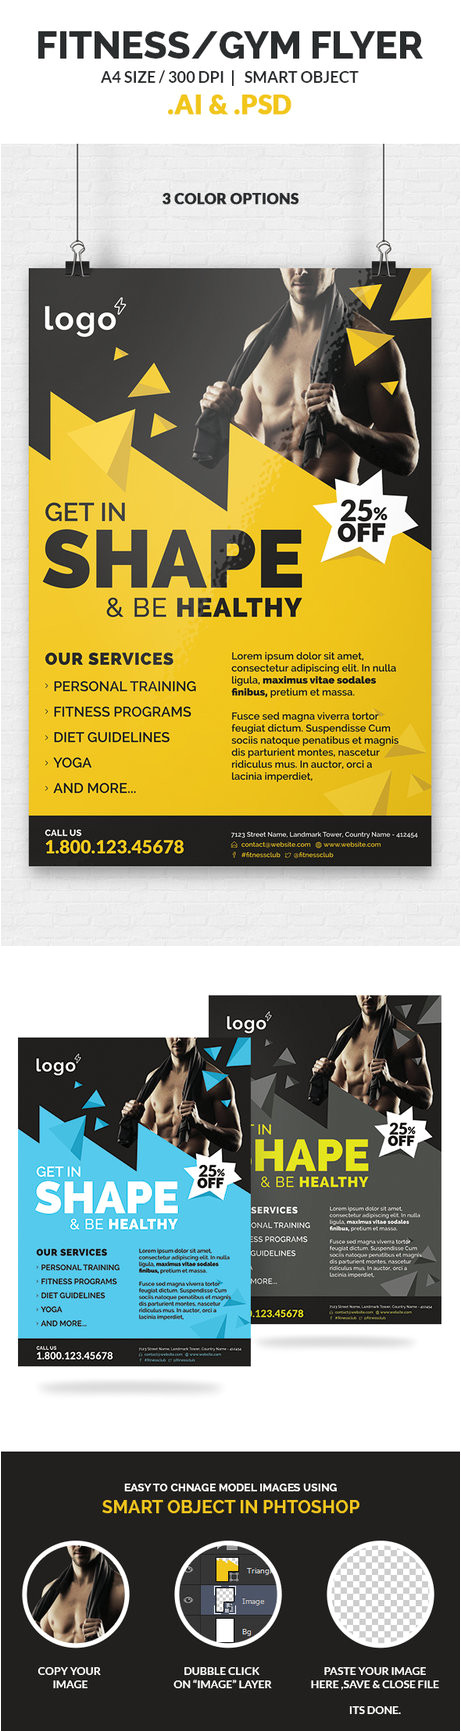 fitness gym flyer template 510774956